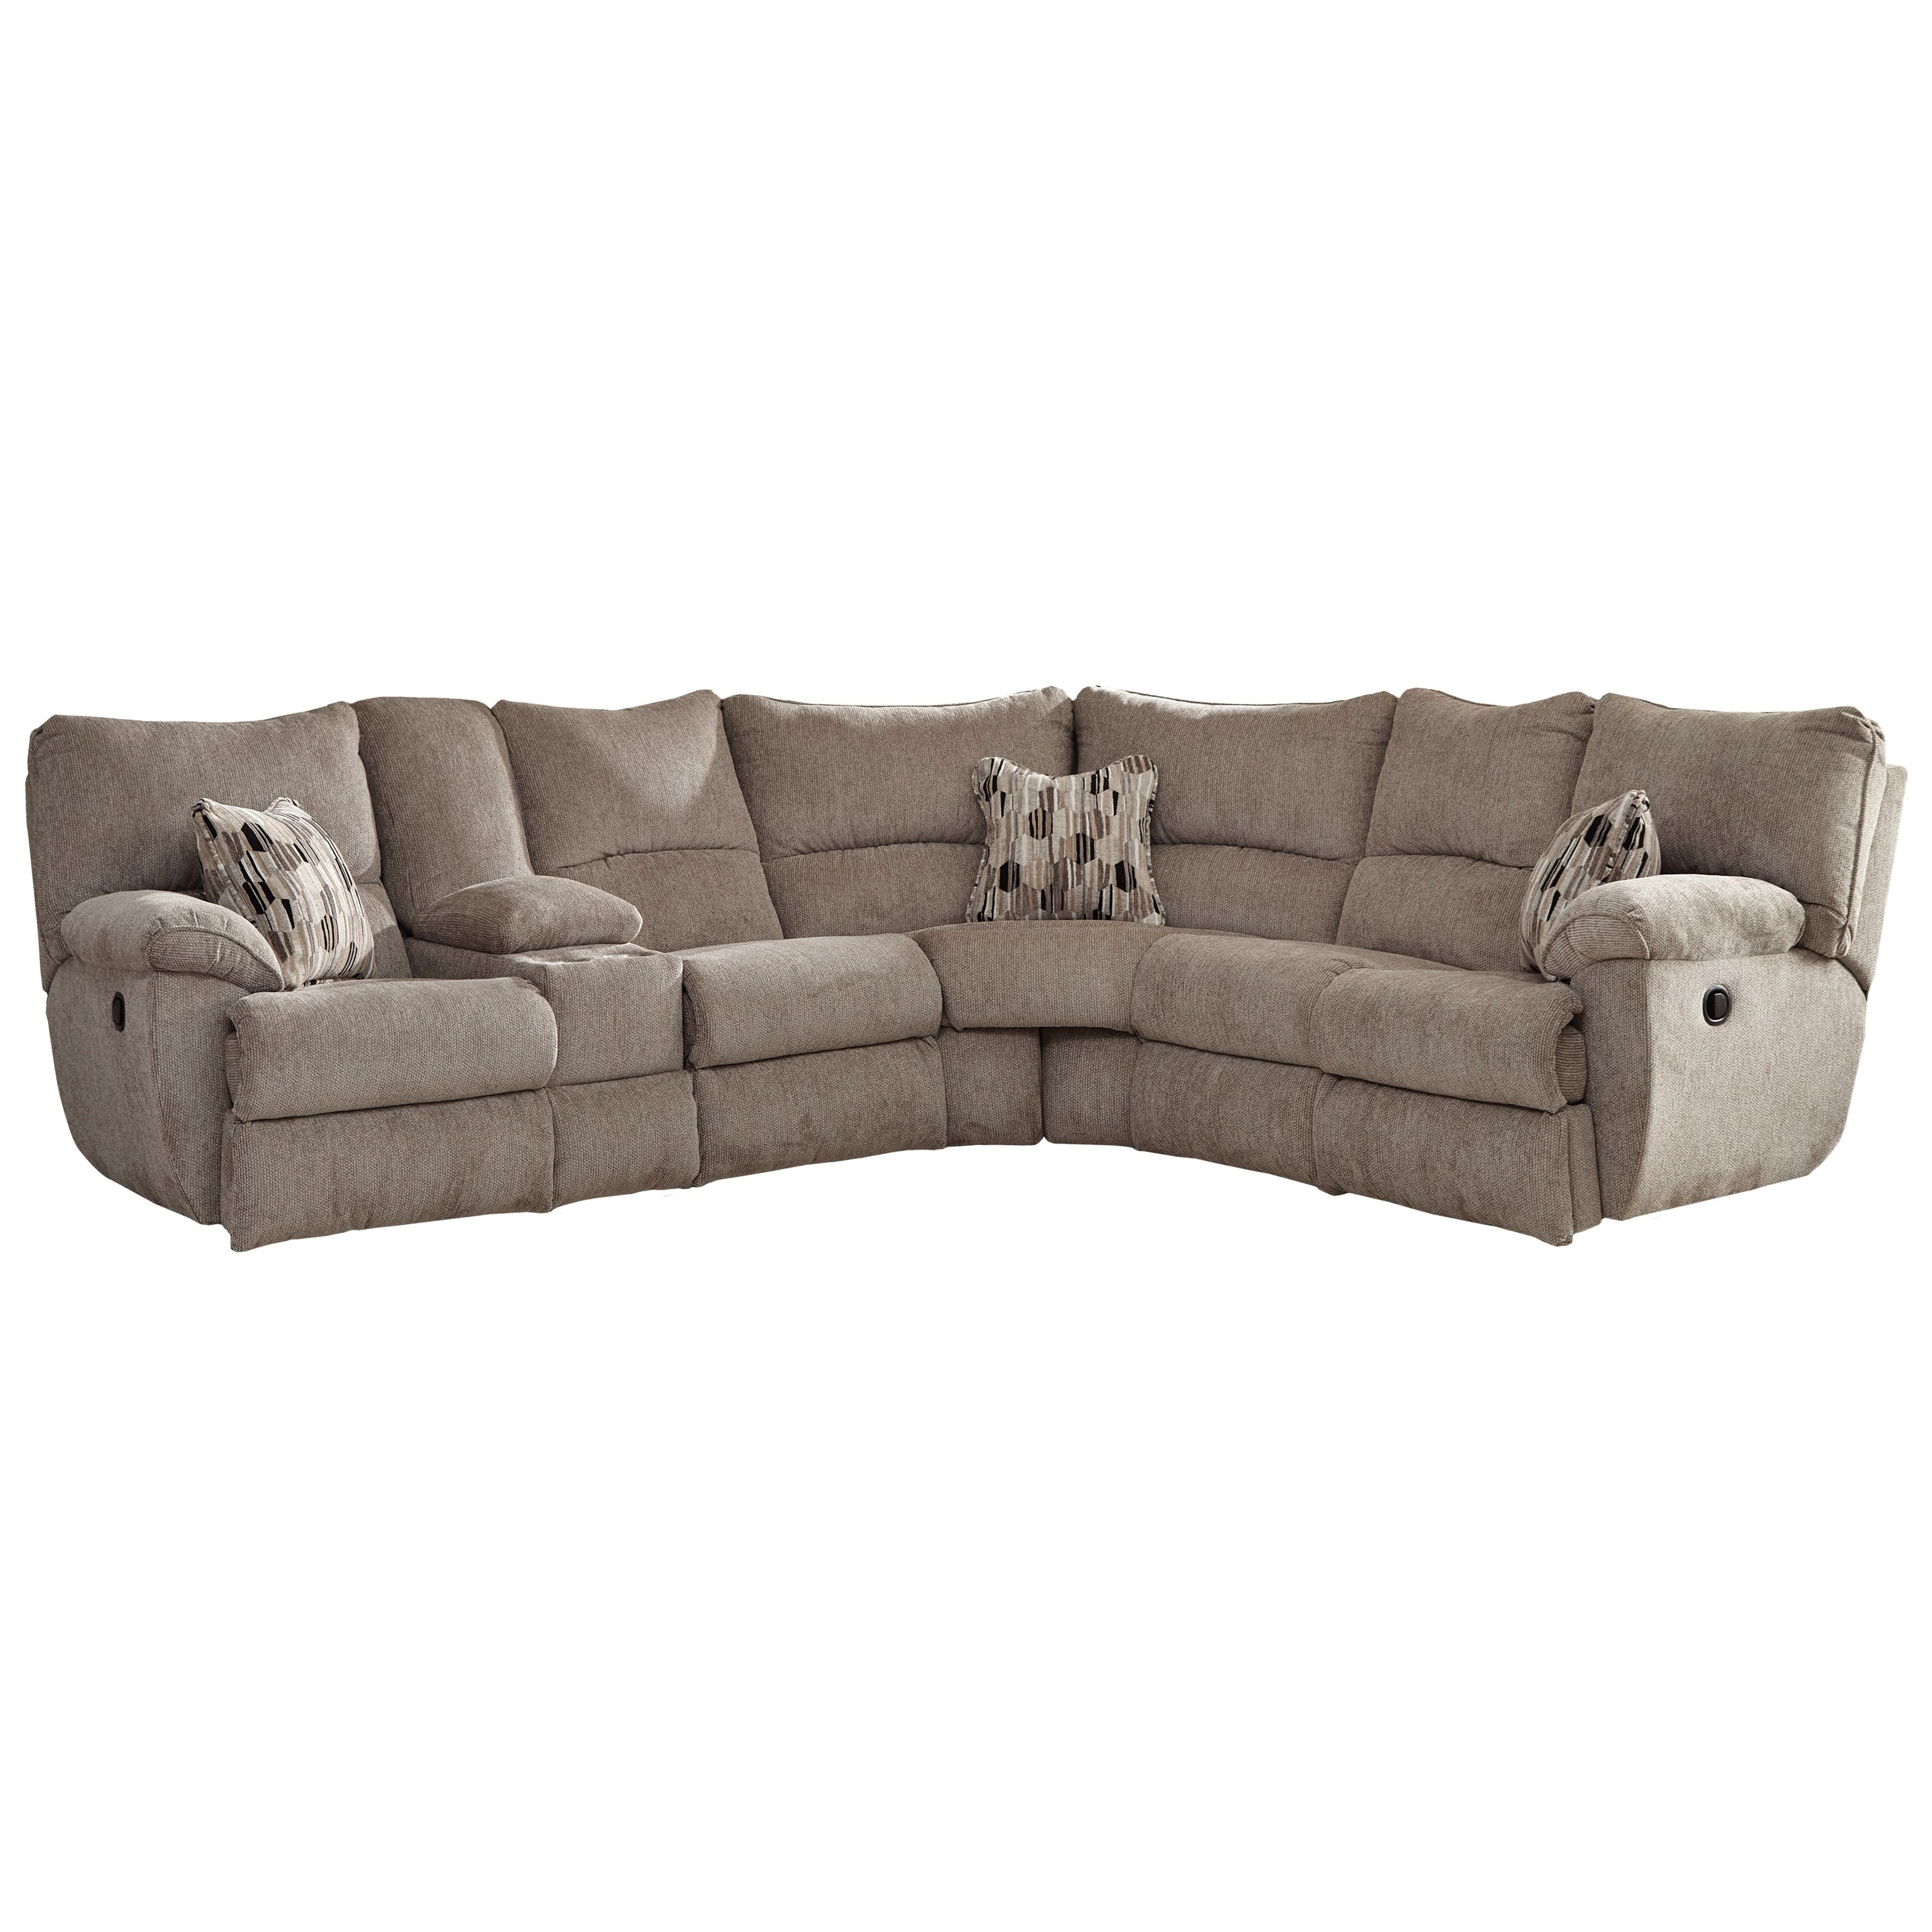 Catnapper Elliott Lay Flat Sectional Sofa With Storage Console Lindy S Furniture Company Reclining Sectional Sofas